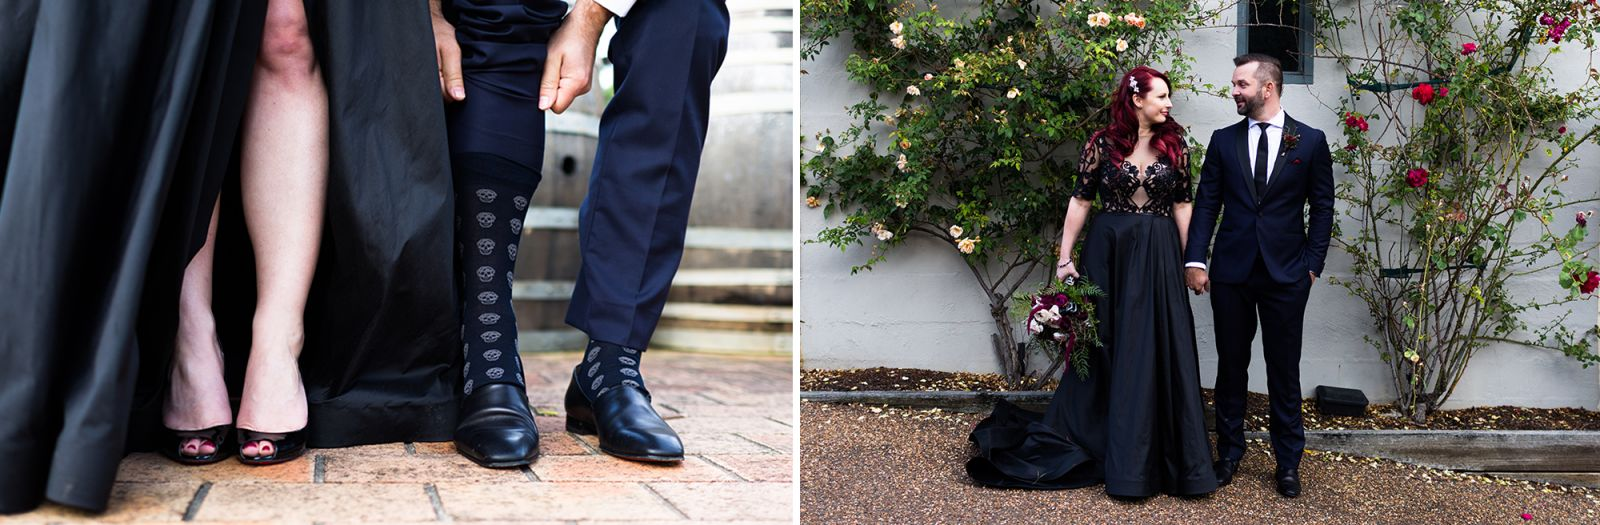 14_quriky-wedding-photography-at-wandin-valley-hunter-valley